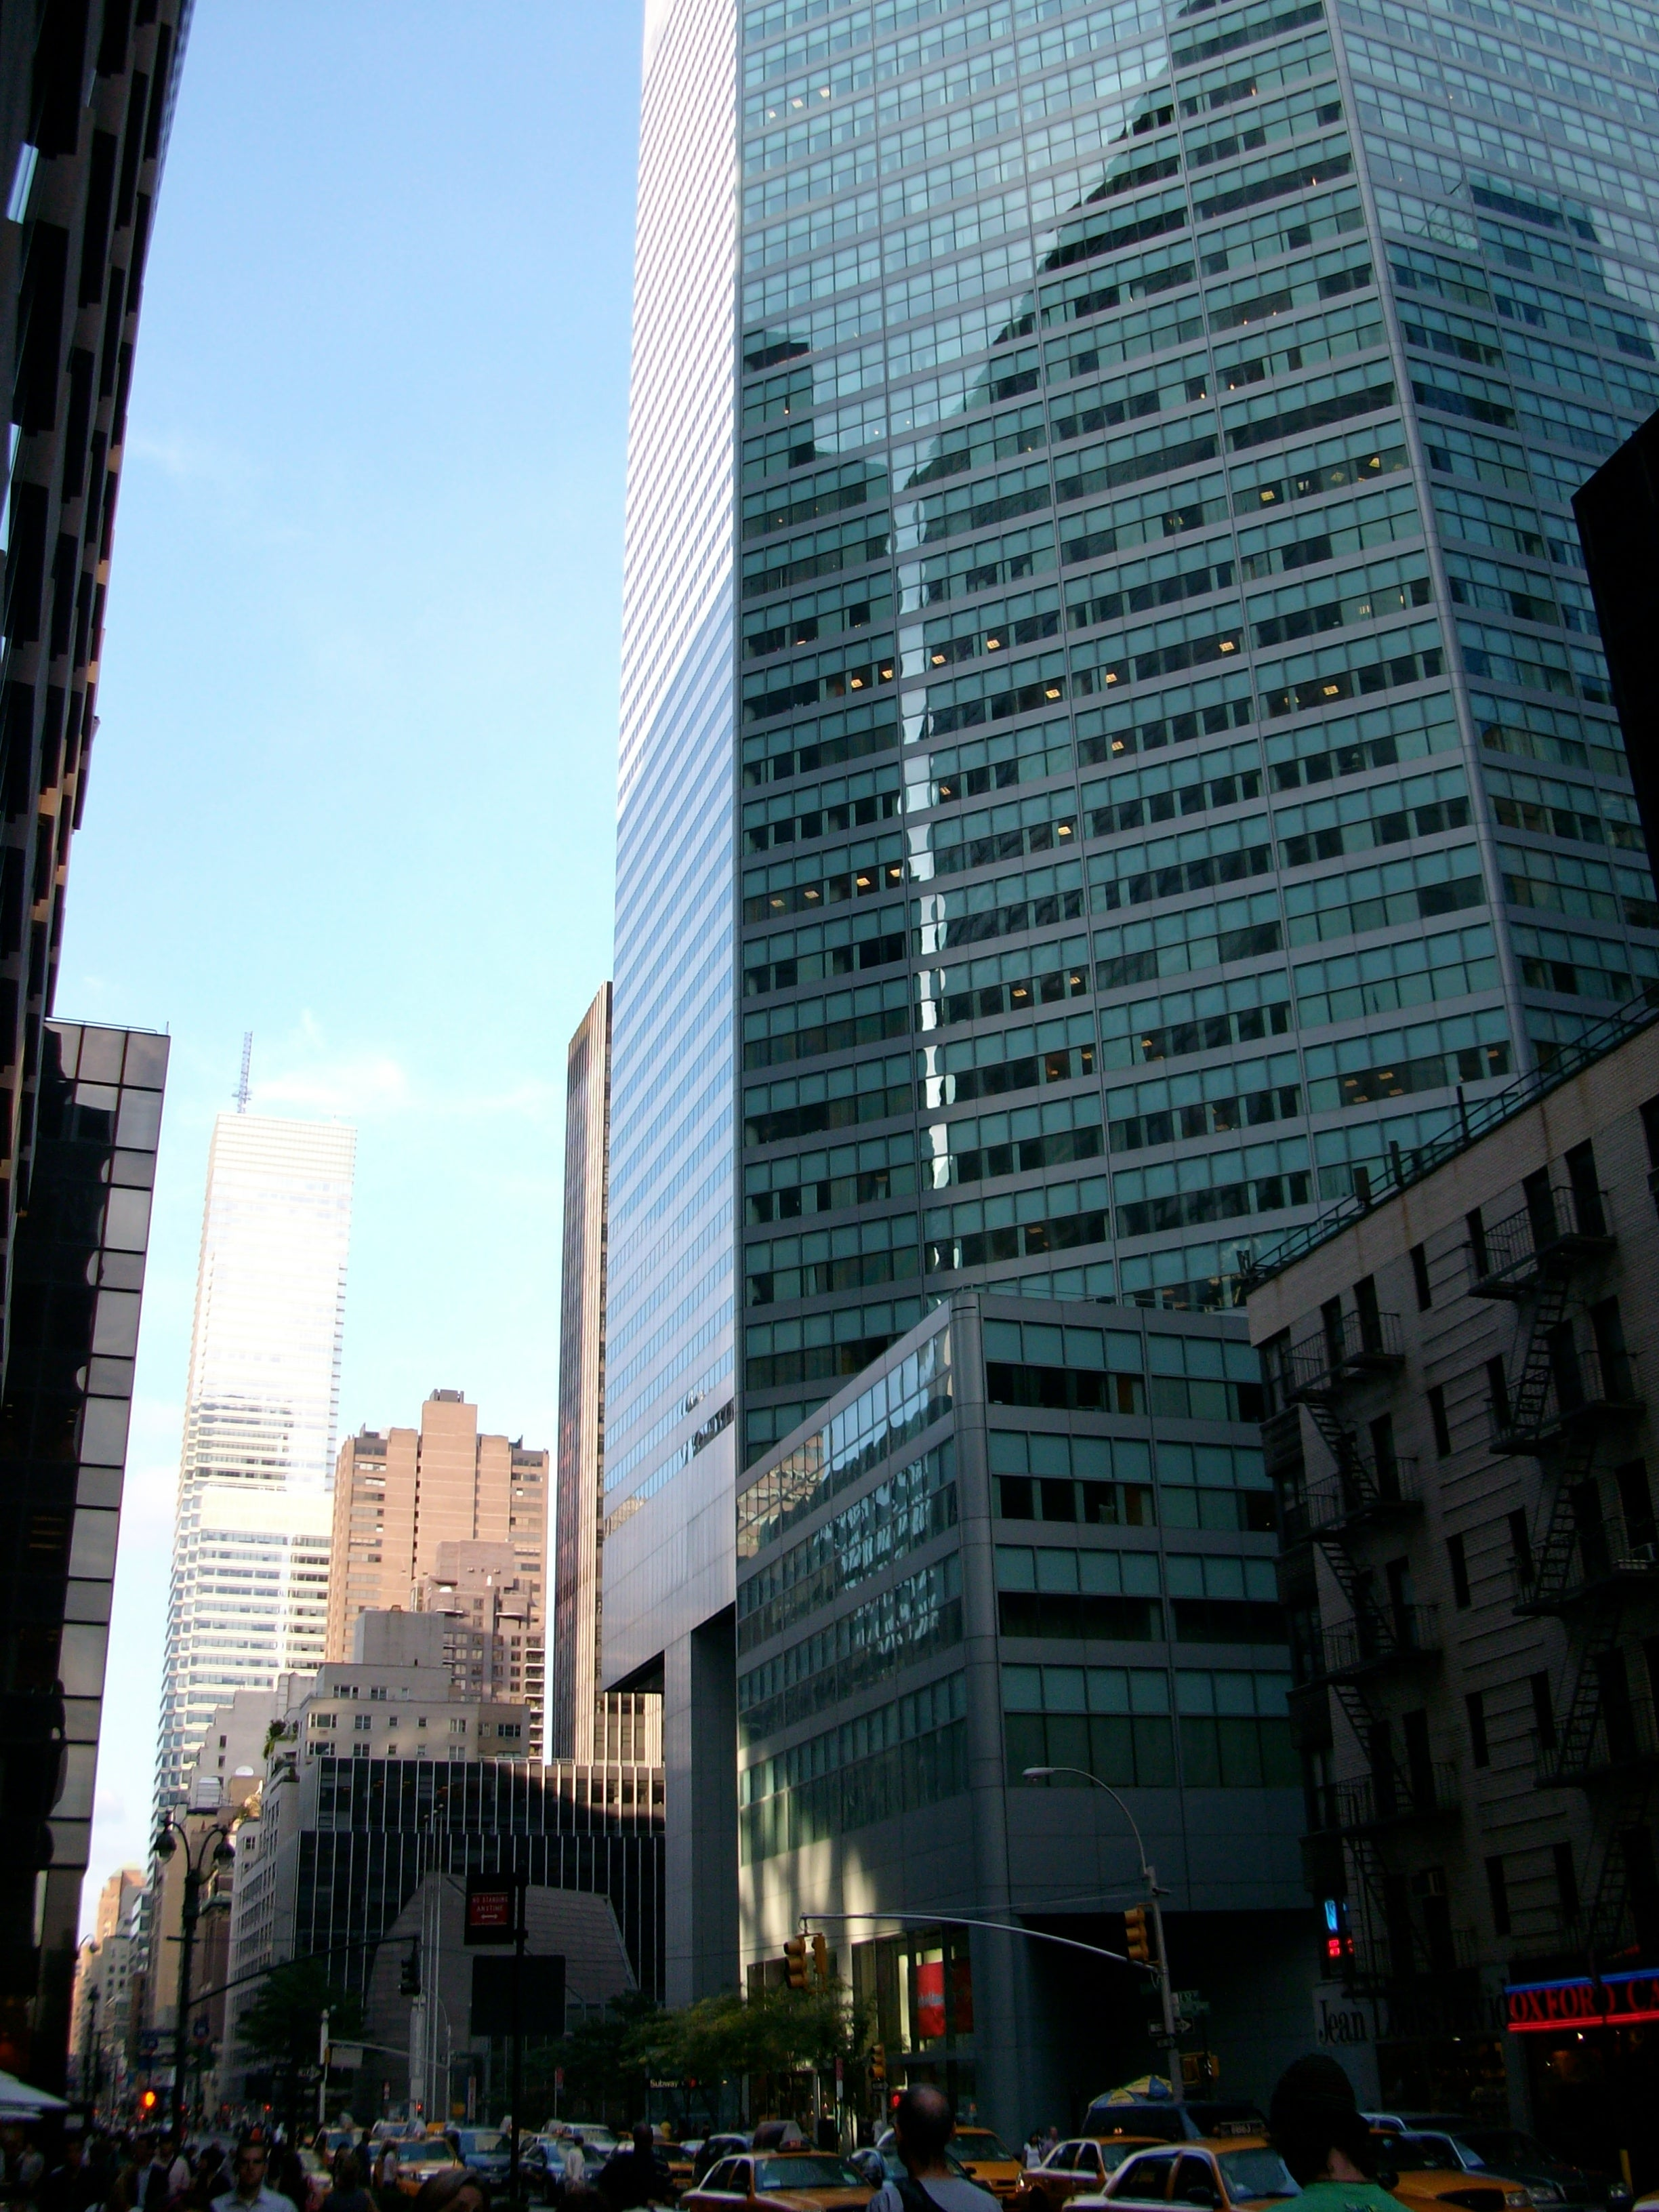 Zona urbana en Lexington avenue